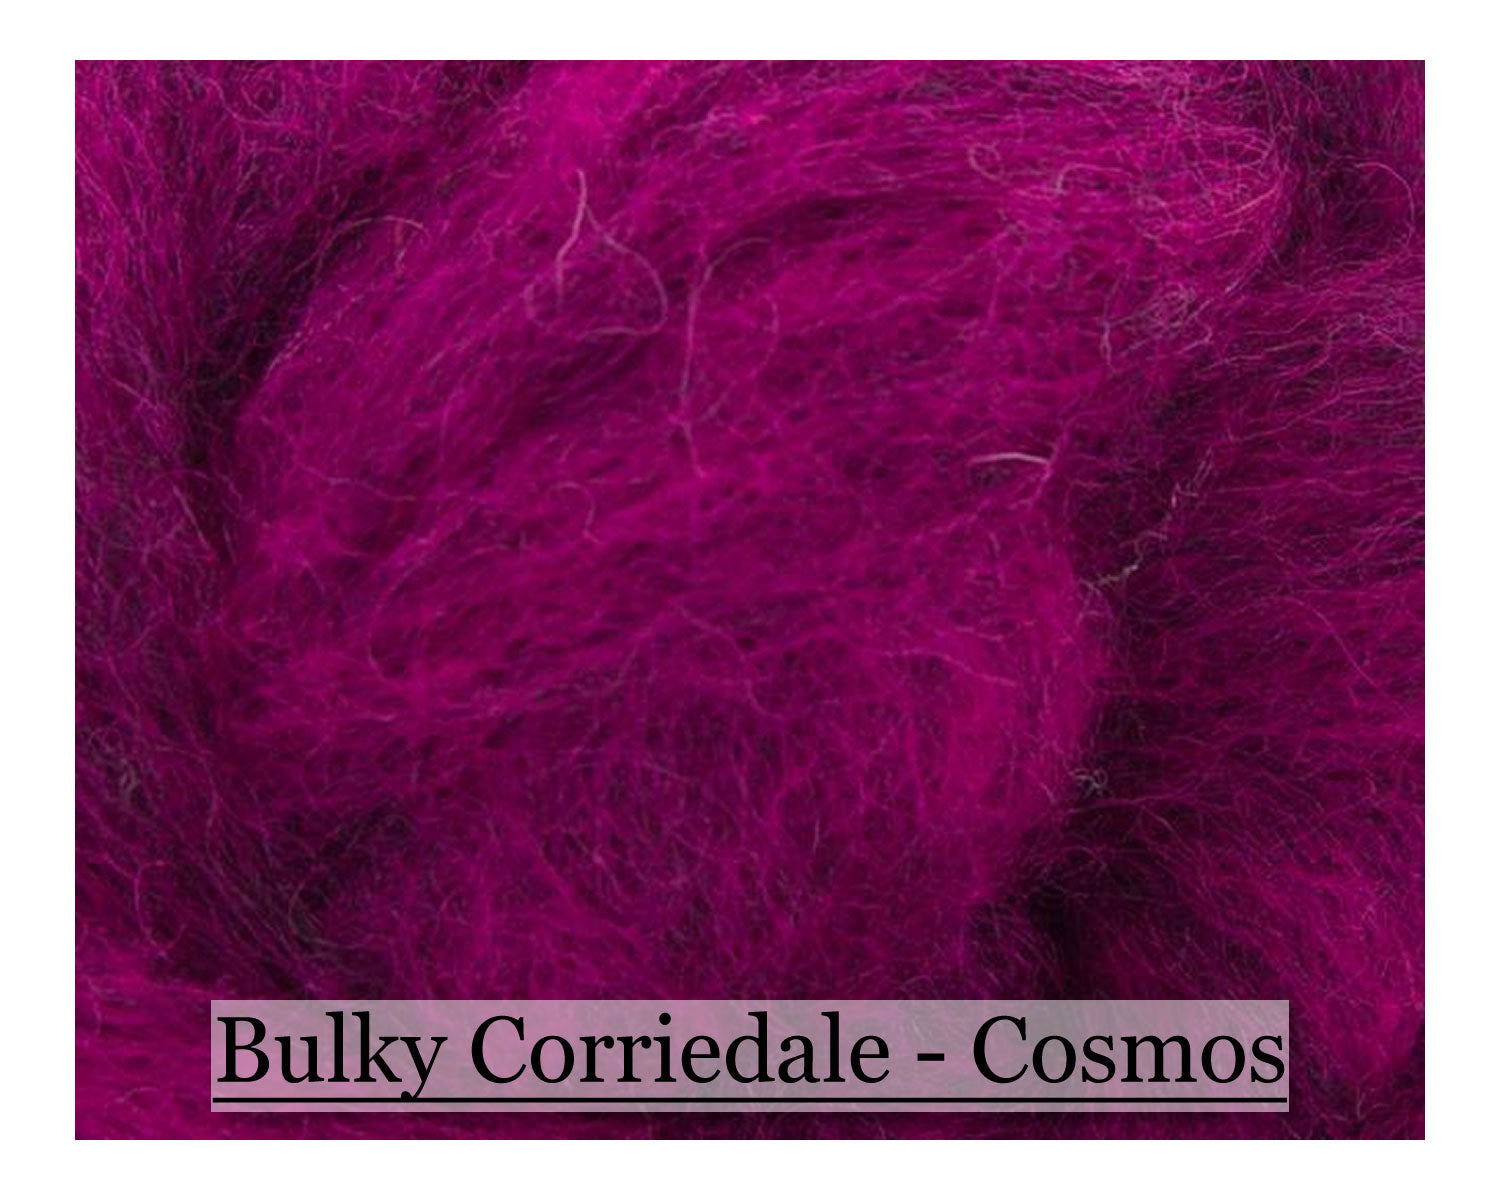 Sunflower - Bulky Corriedale Wool - 16oz